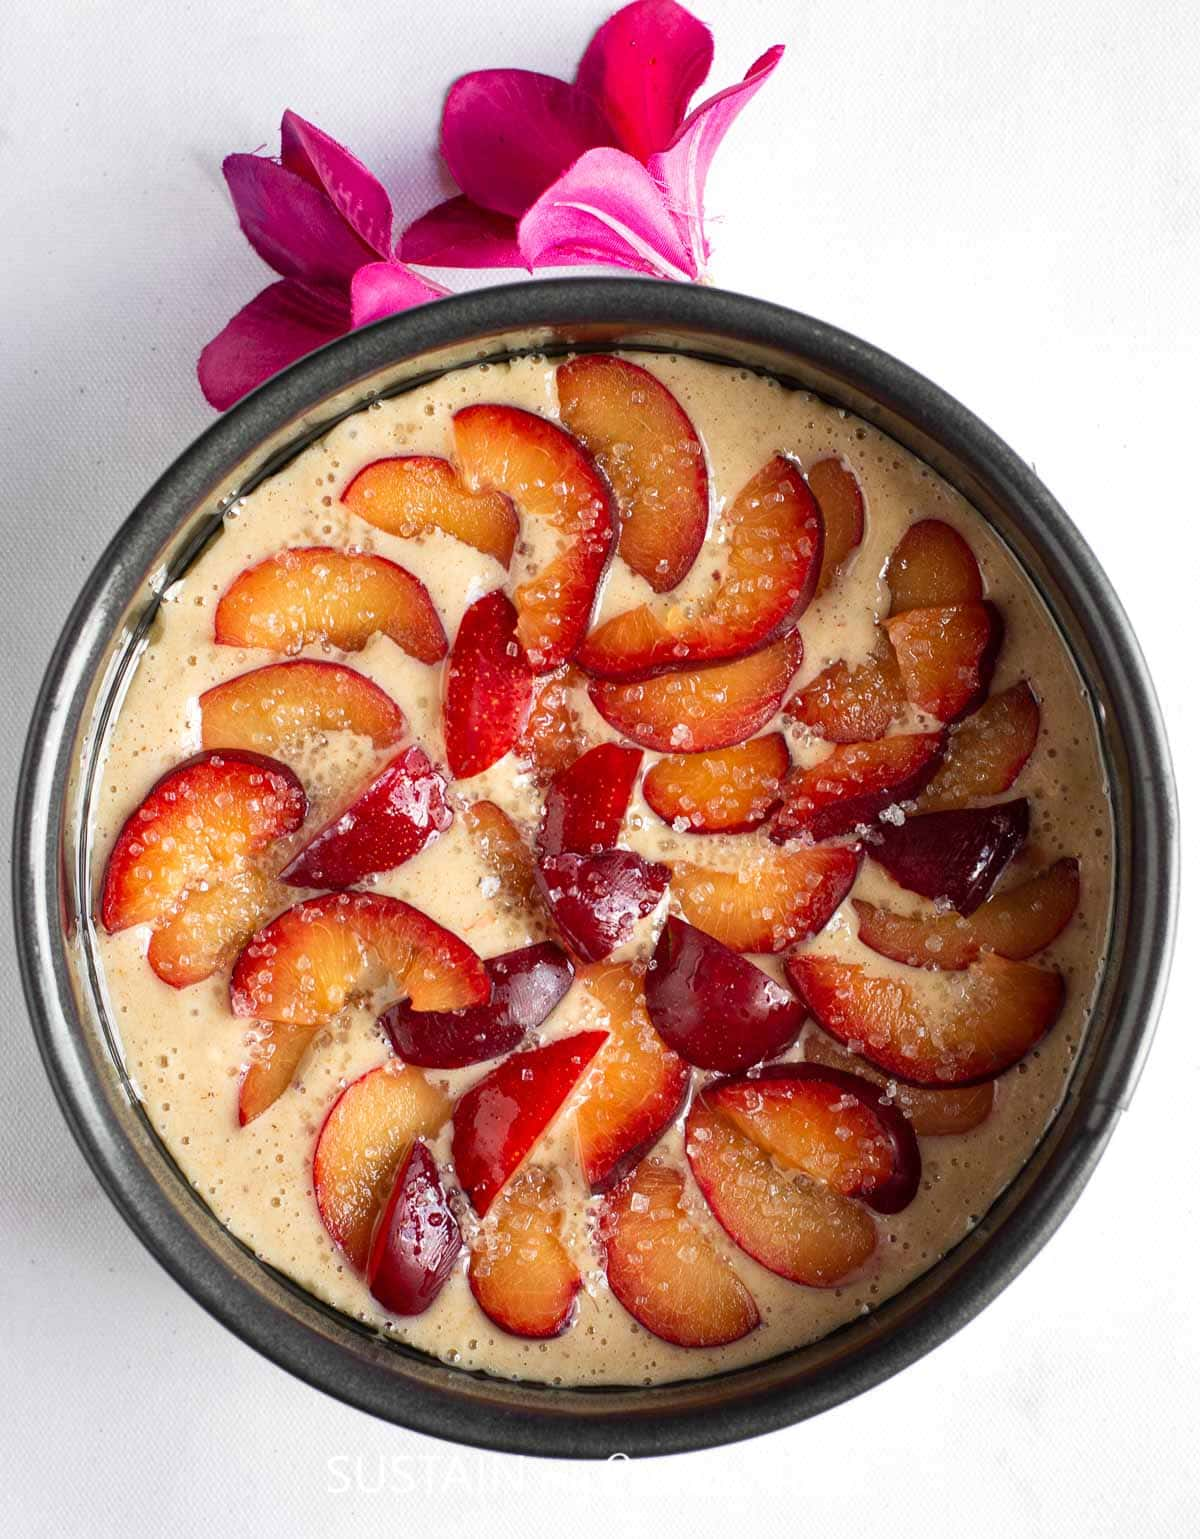 Poured plum cake batter in a baking pan and fresh cut plums arranged on top.